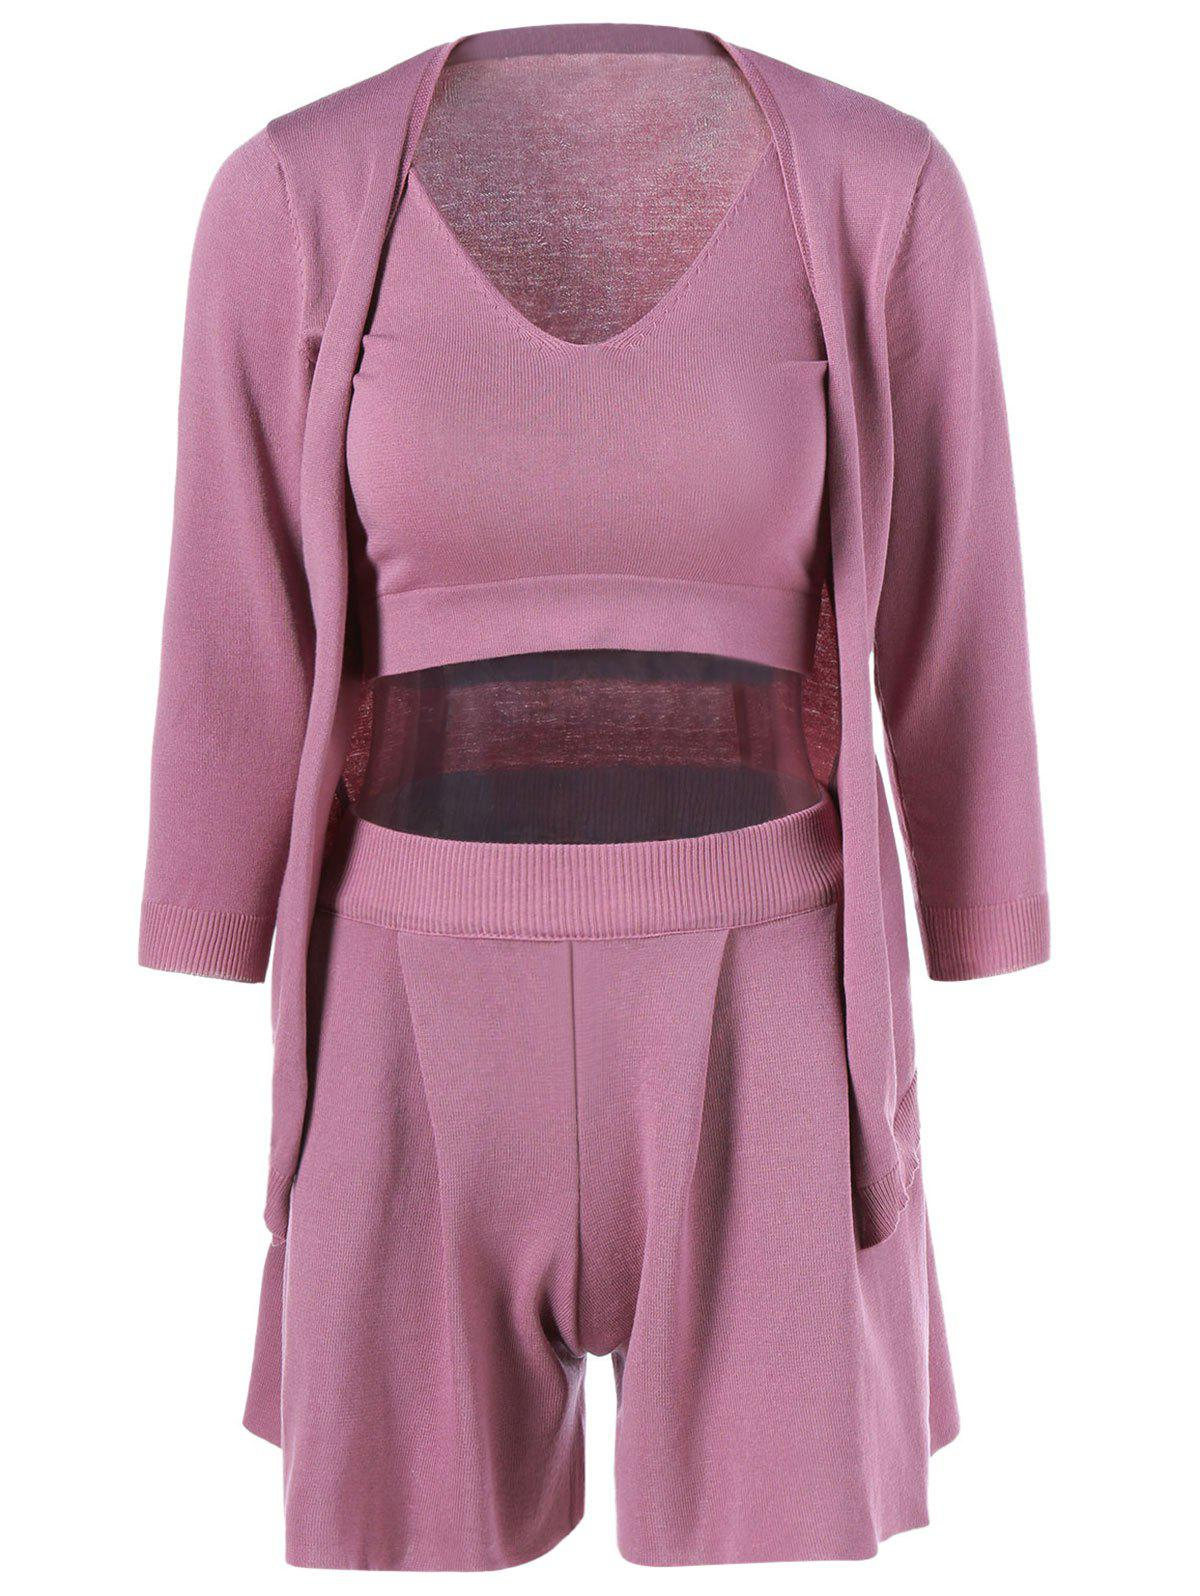 Knit Tank Top + Shorts + Cardigan - PINK ONE SIZE